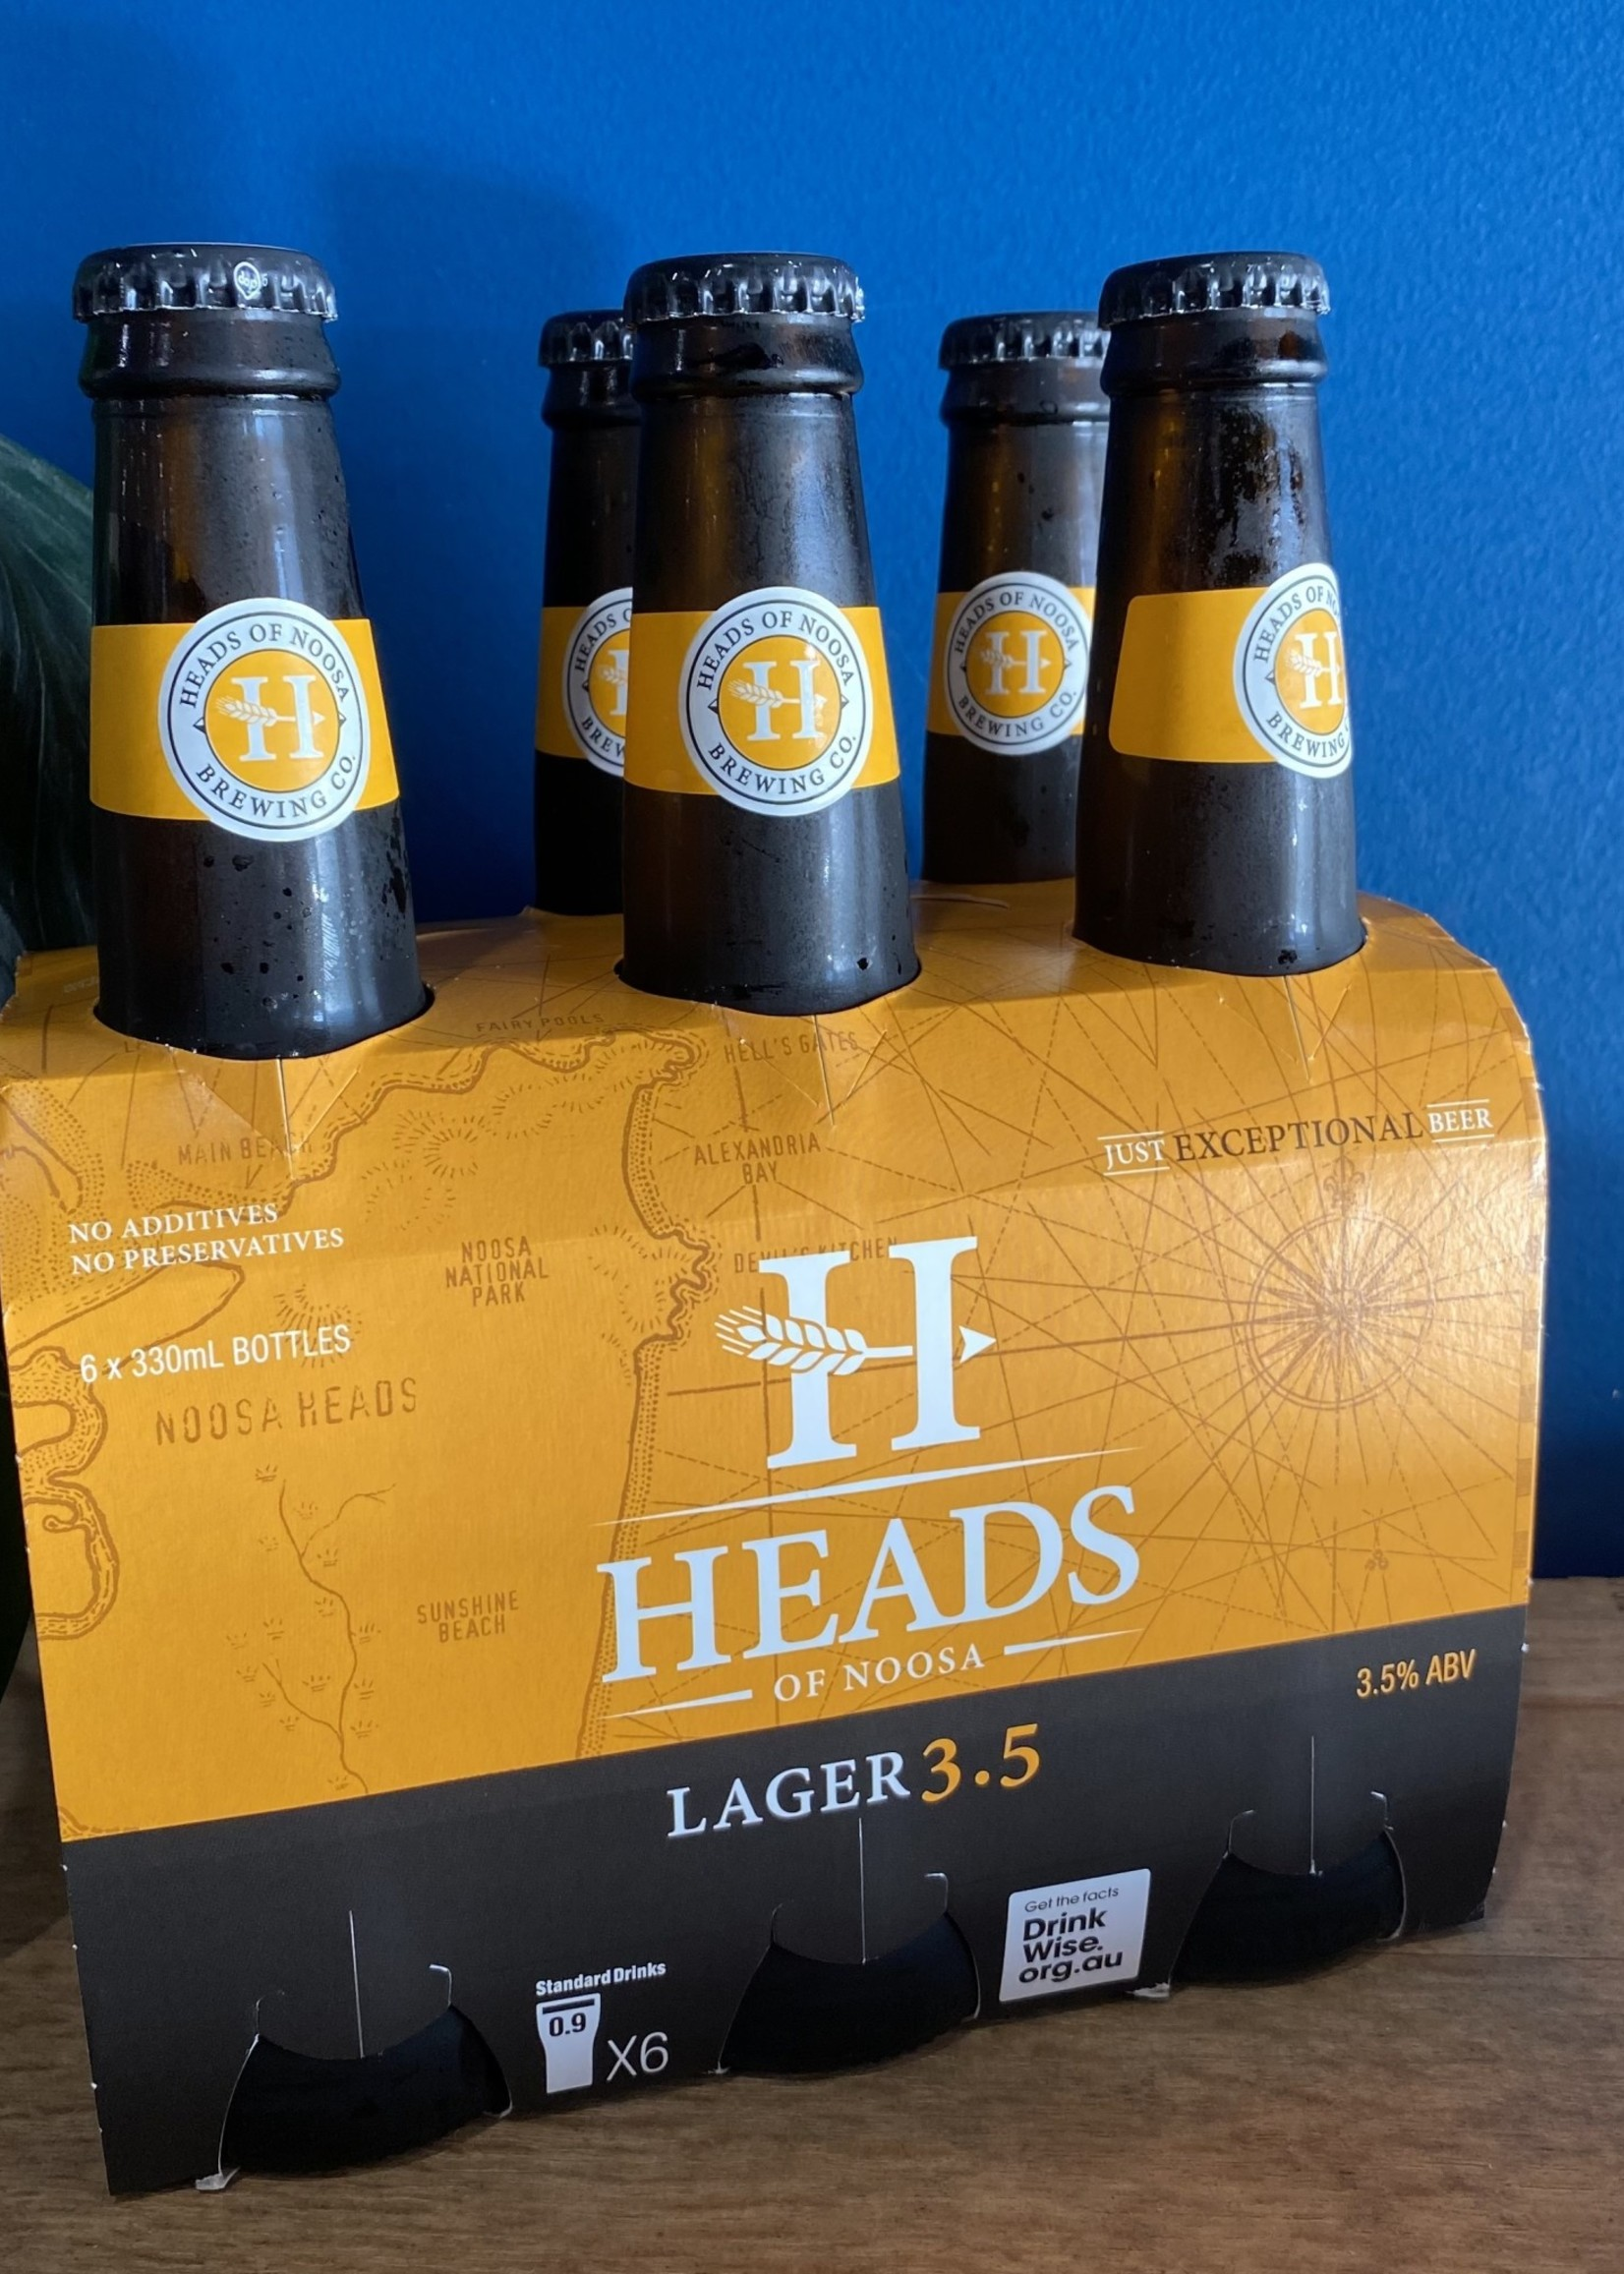 Heads Of Noosa Heads of Noosa Lager 3.5